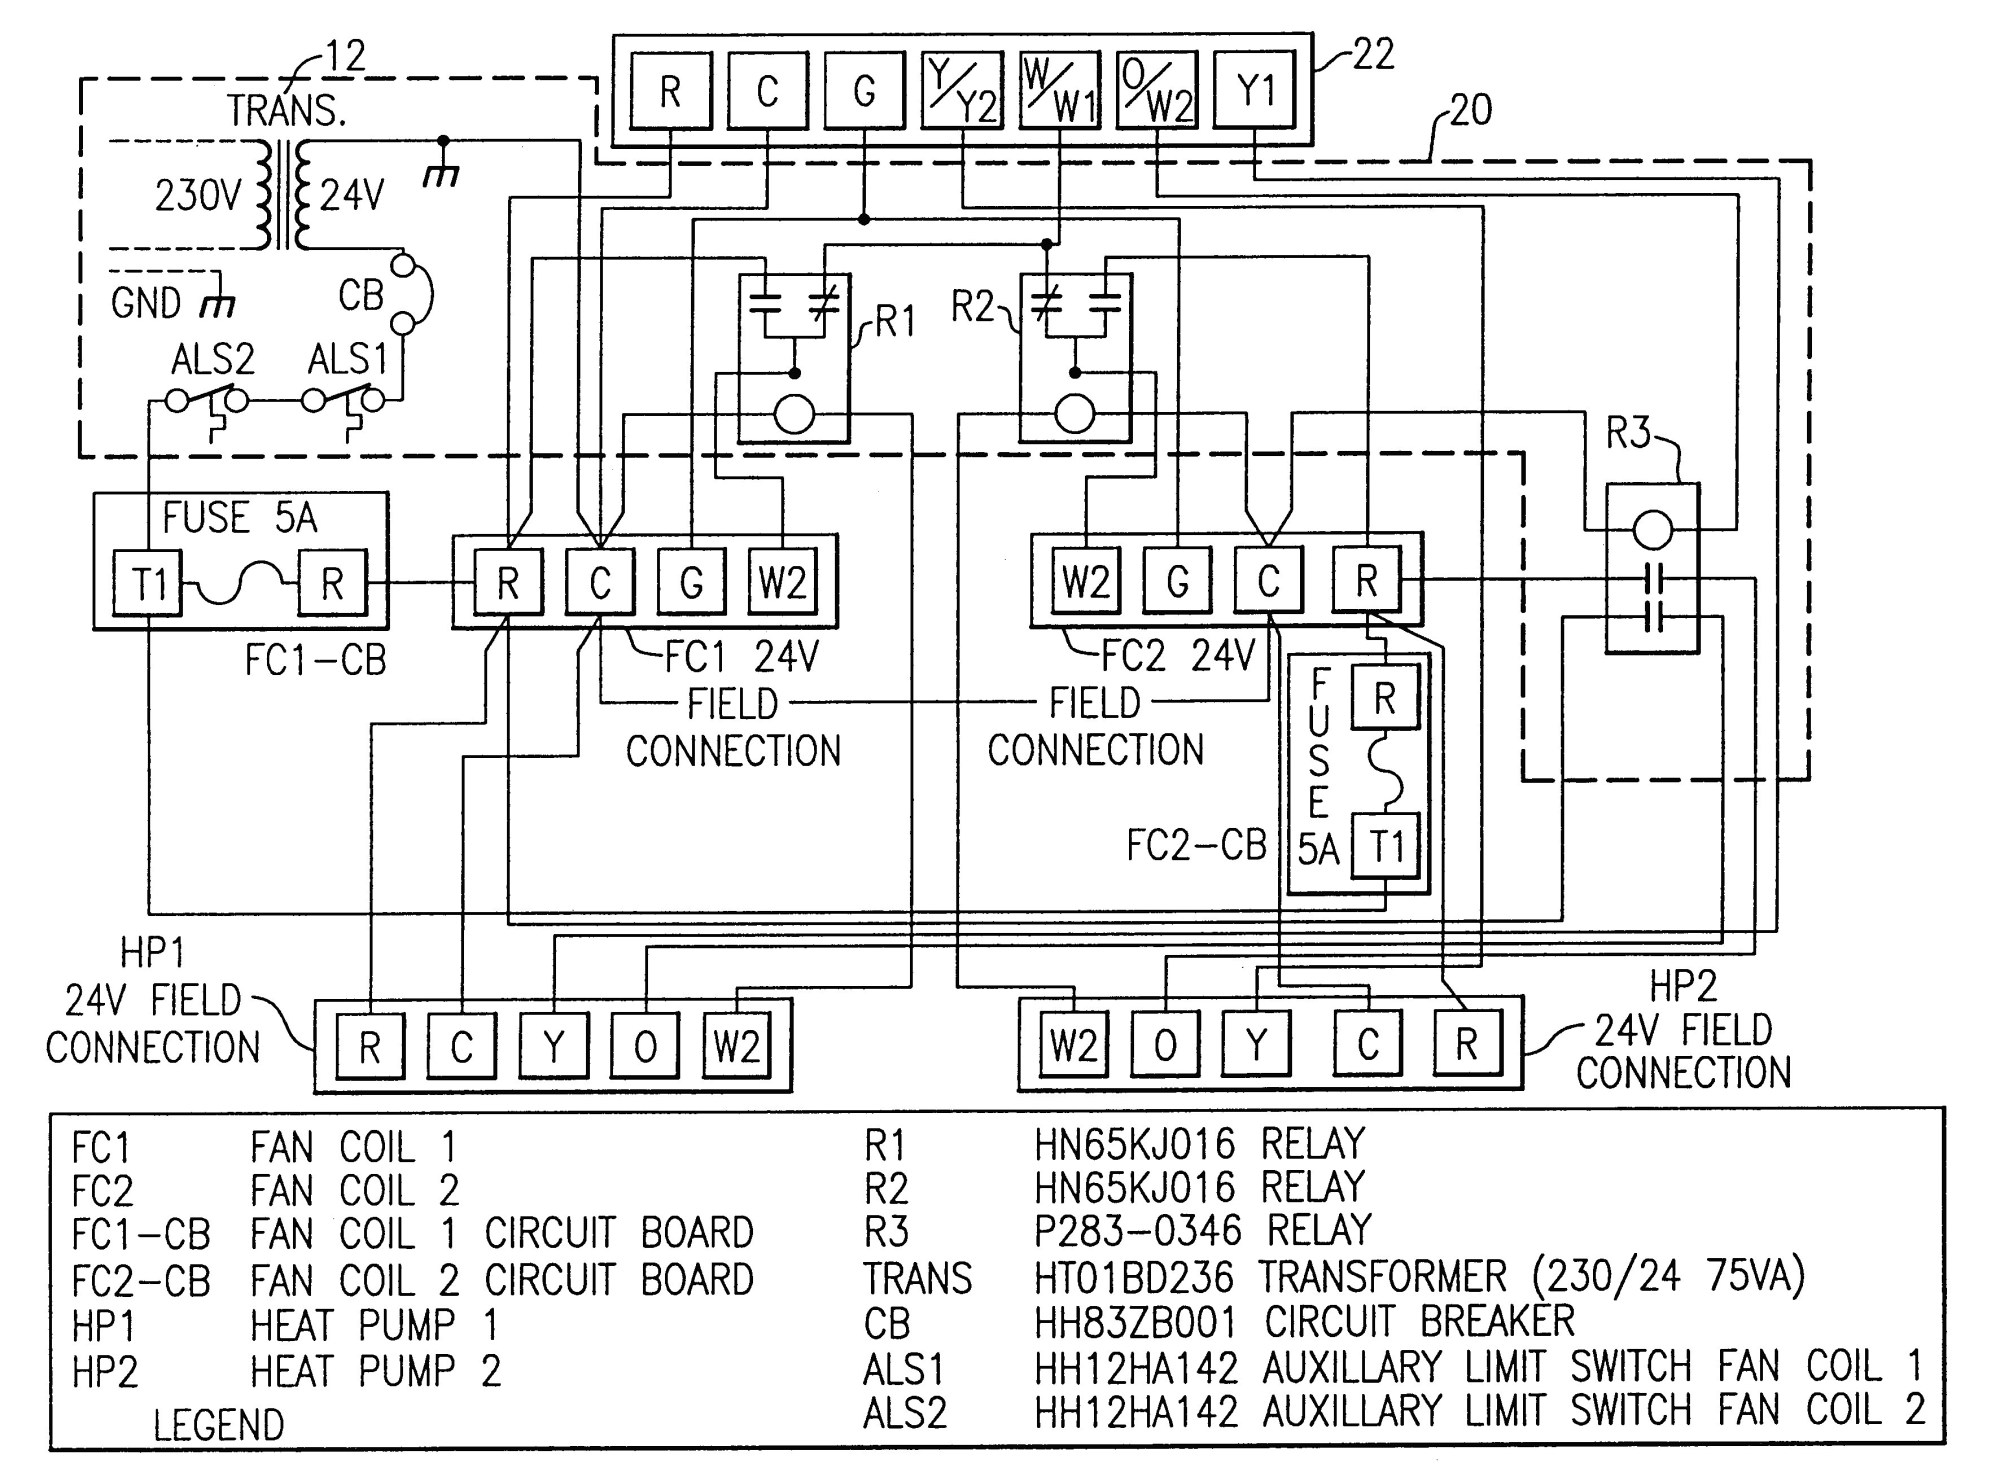 hight resolution of lennox ac wiring diagram today wiring diagram updatelennox package unit wiring diagrams today wiring diagram update